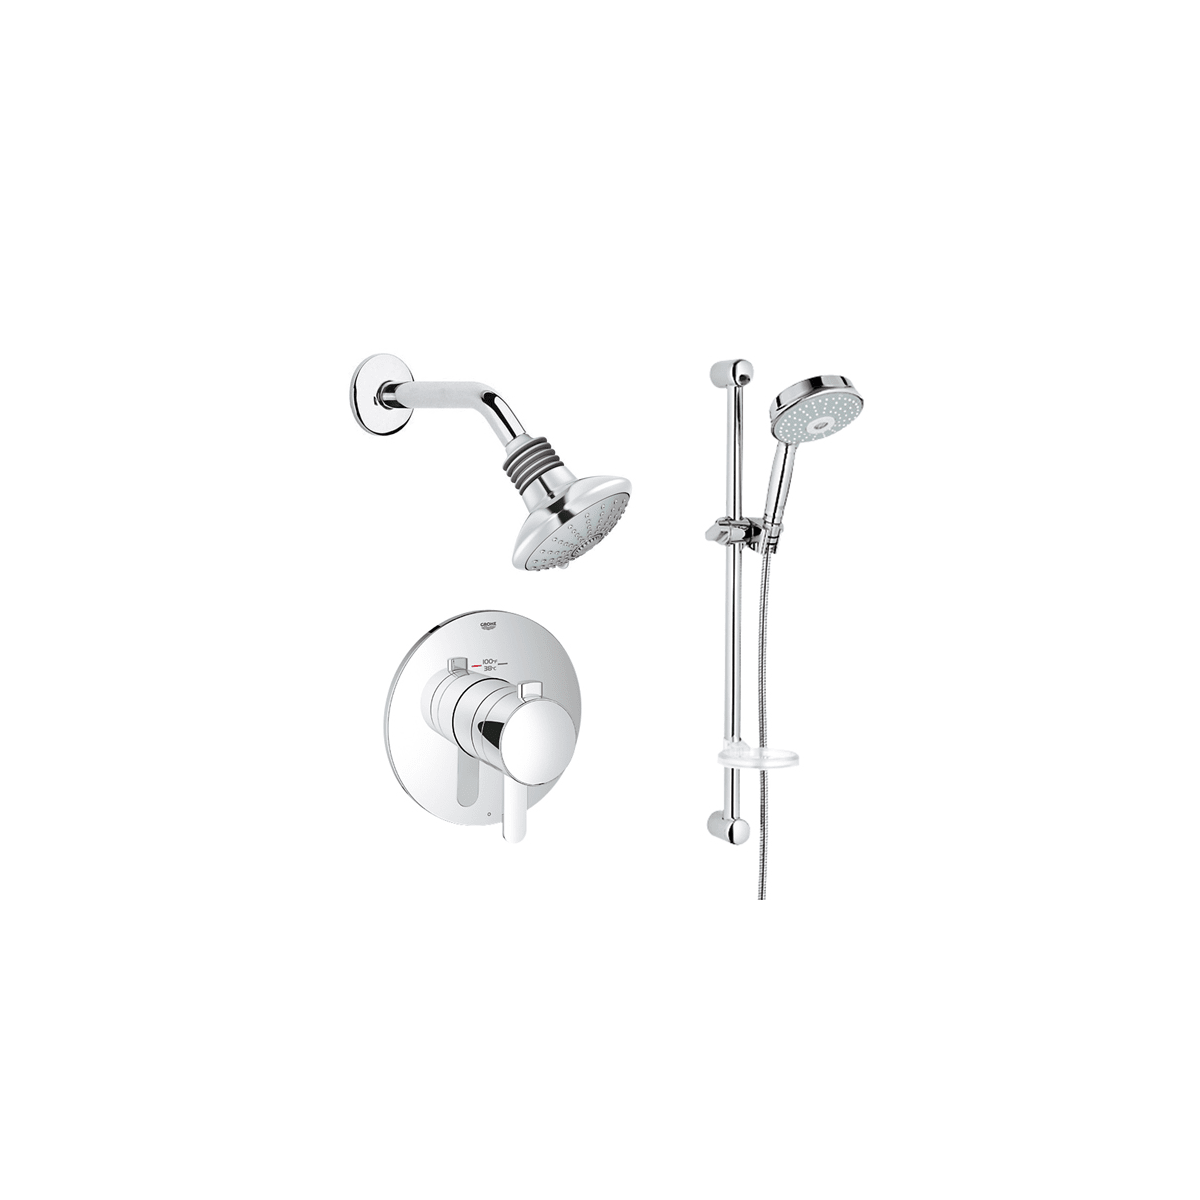 Grohe Grflx T302